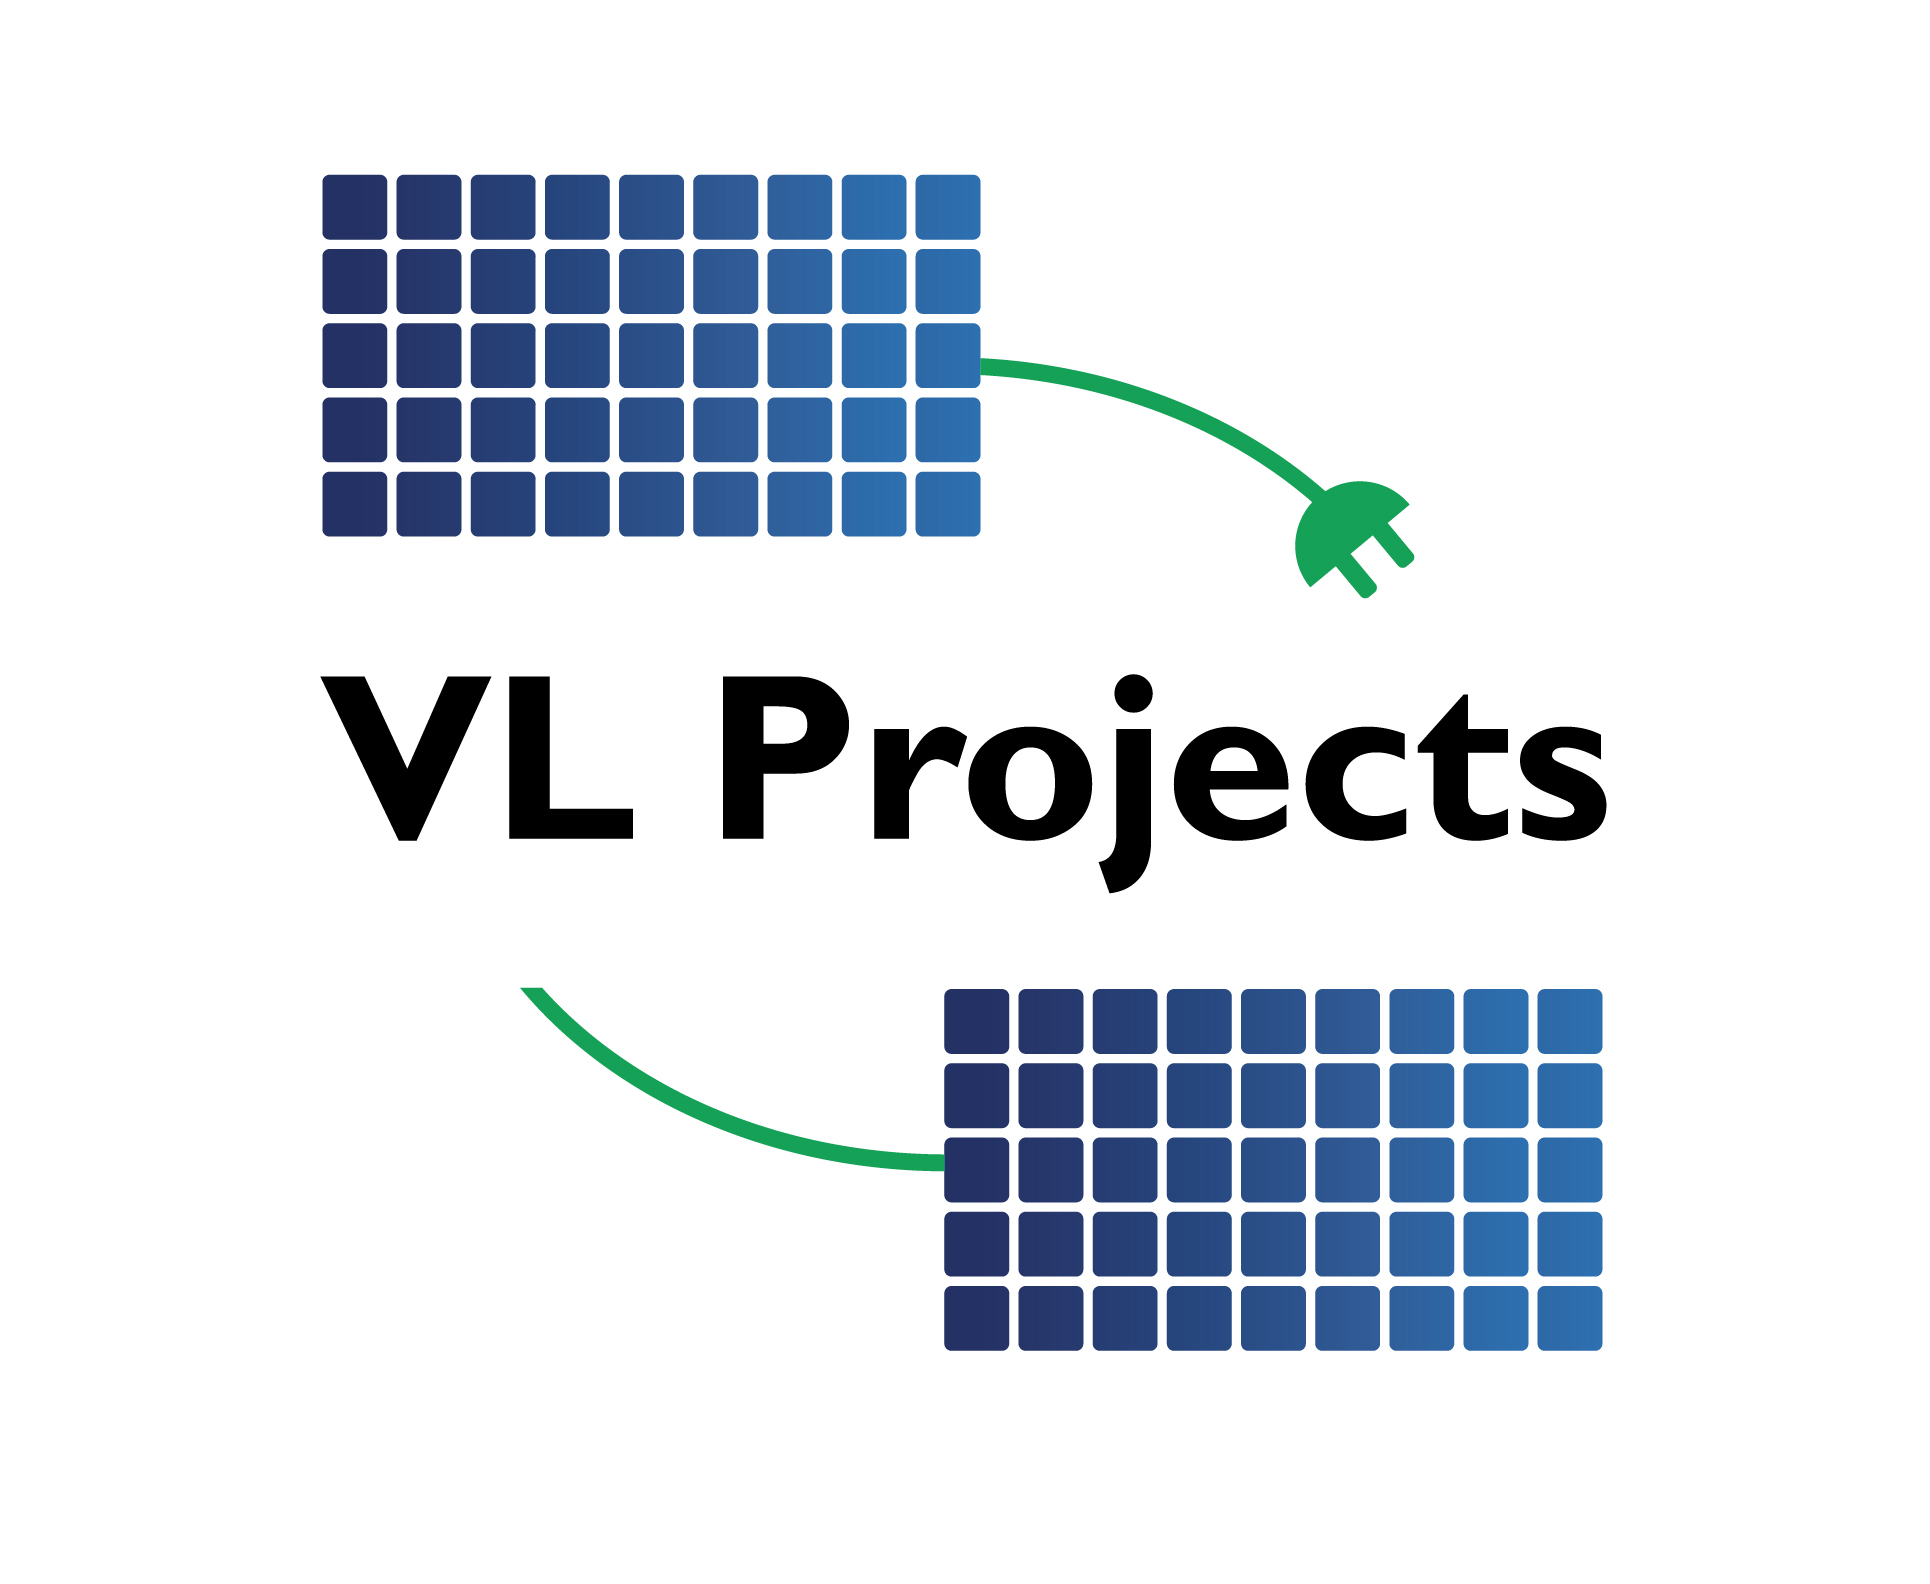 VL Projects